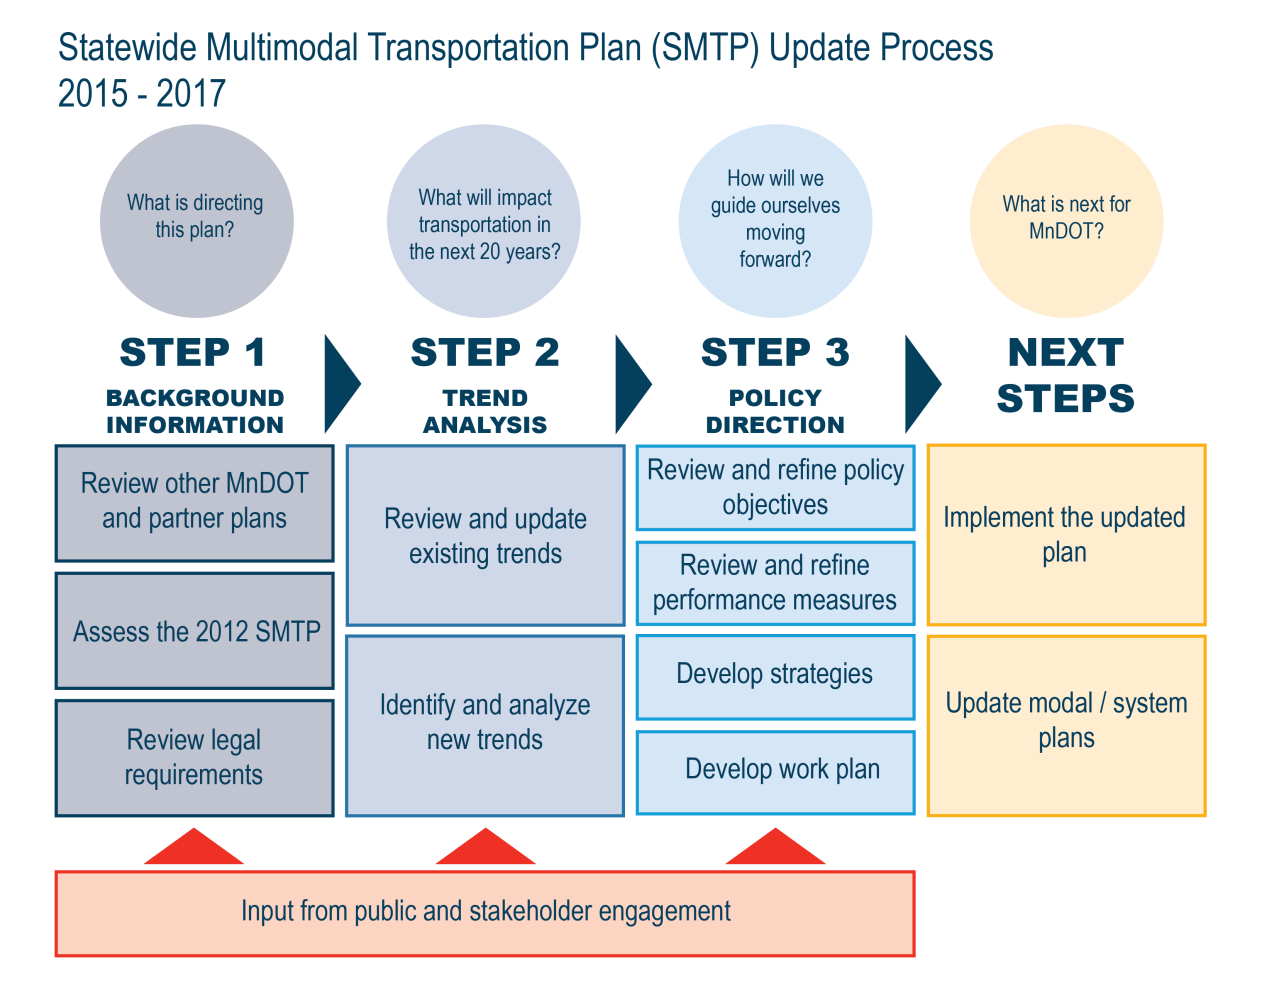 Statewide Multimodal Transportation Plan Update Process